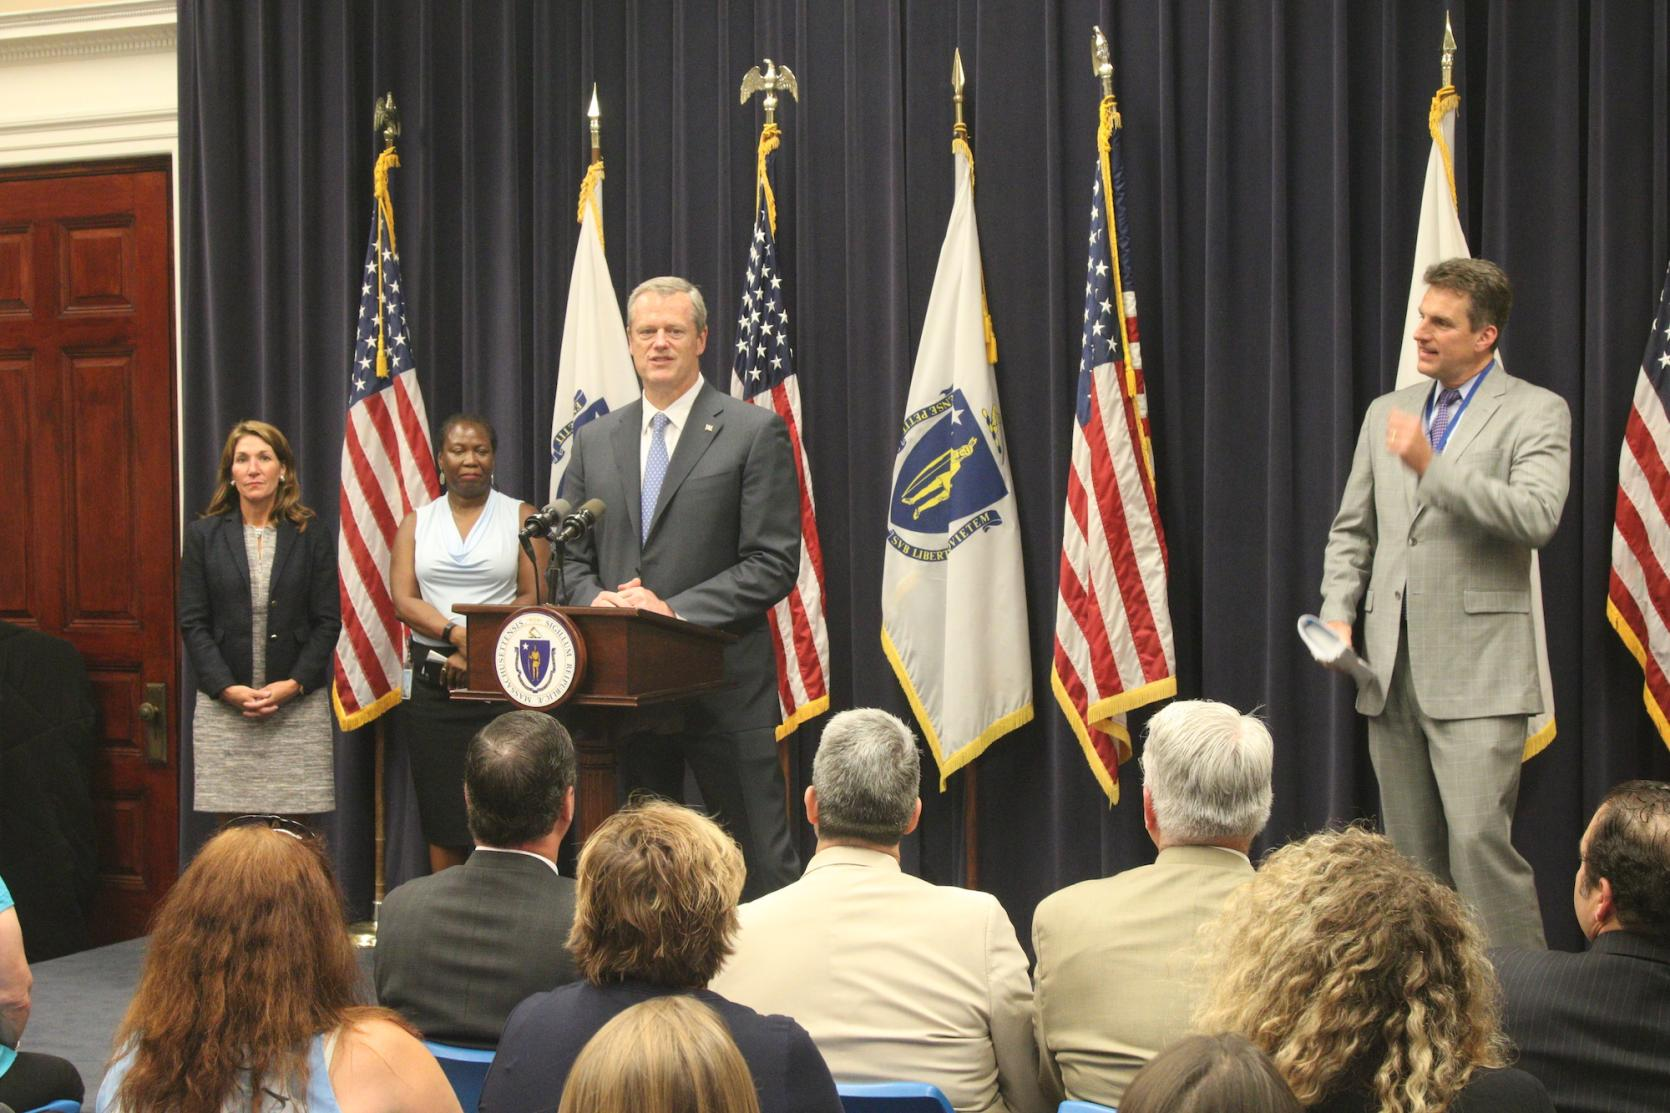 Governor Baker announces Community Development Block Grants during Statehouse event in Boston.